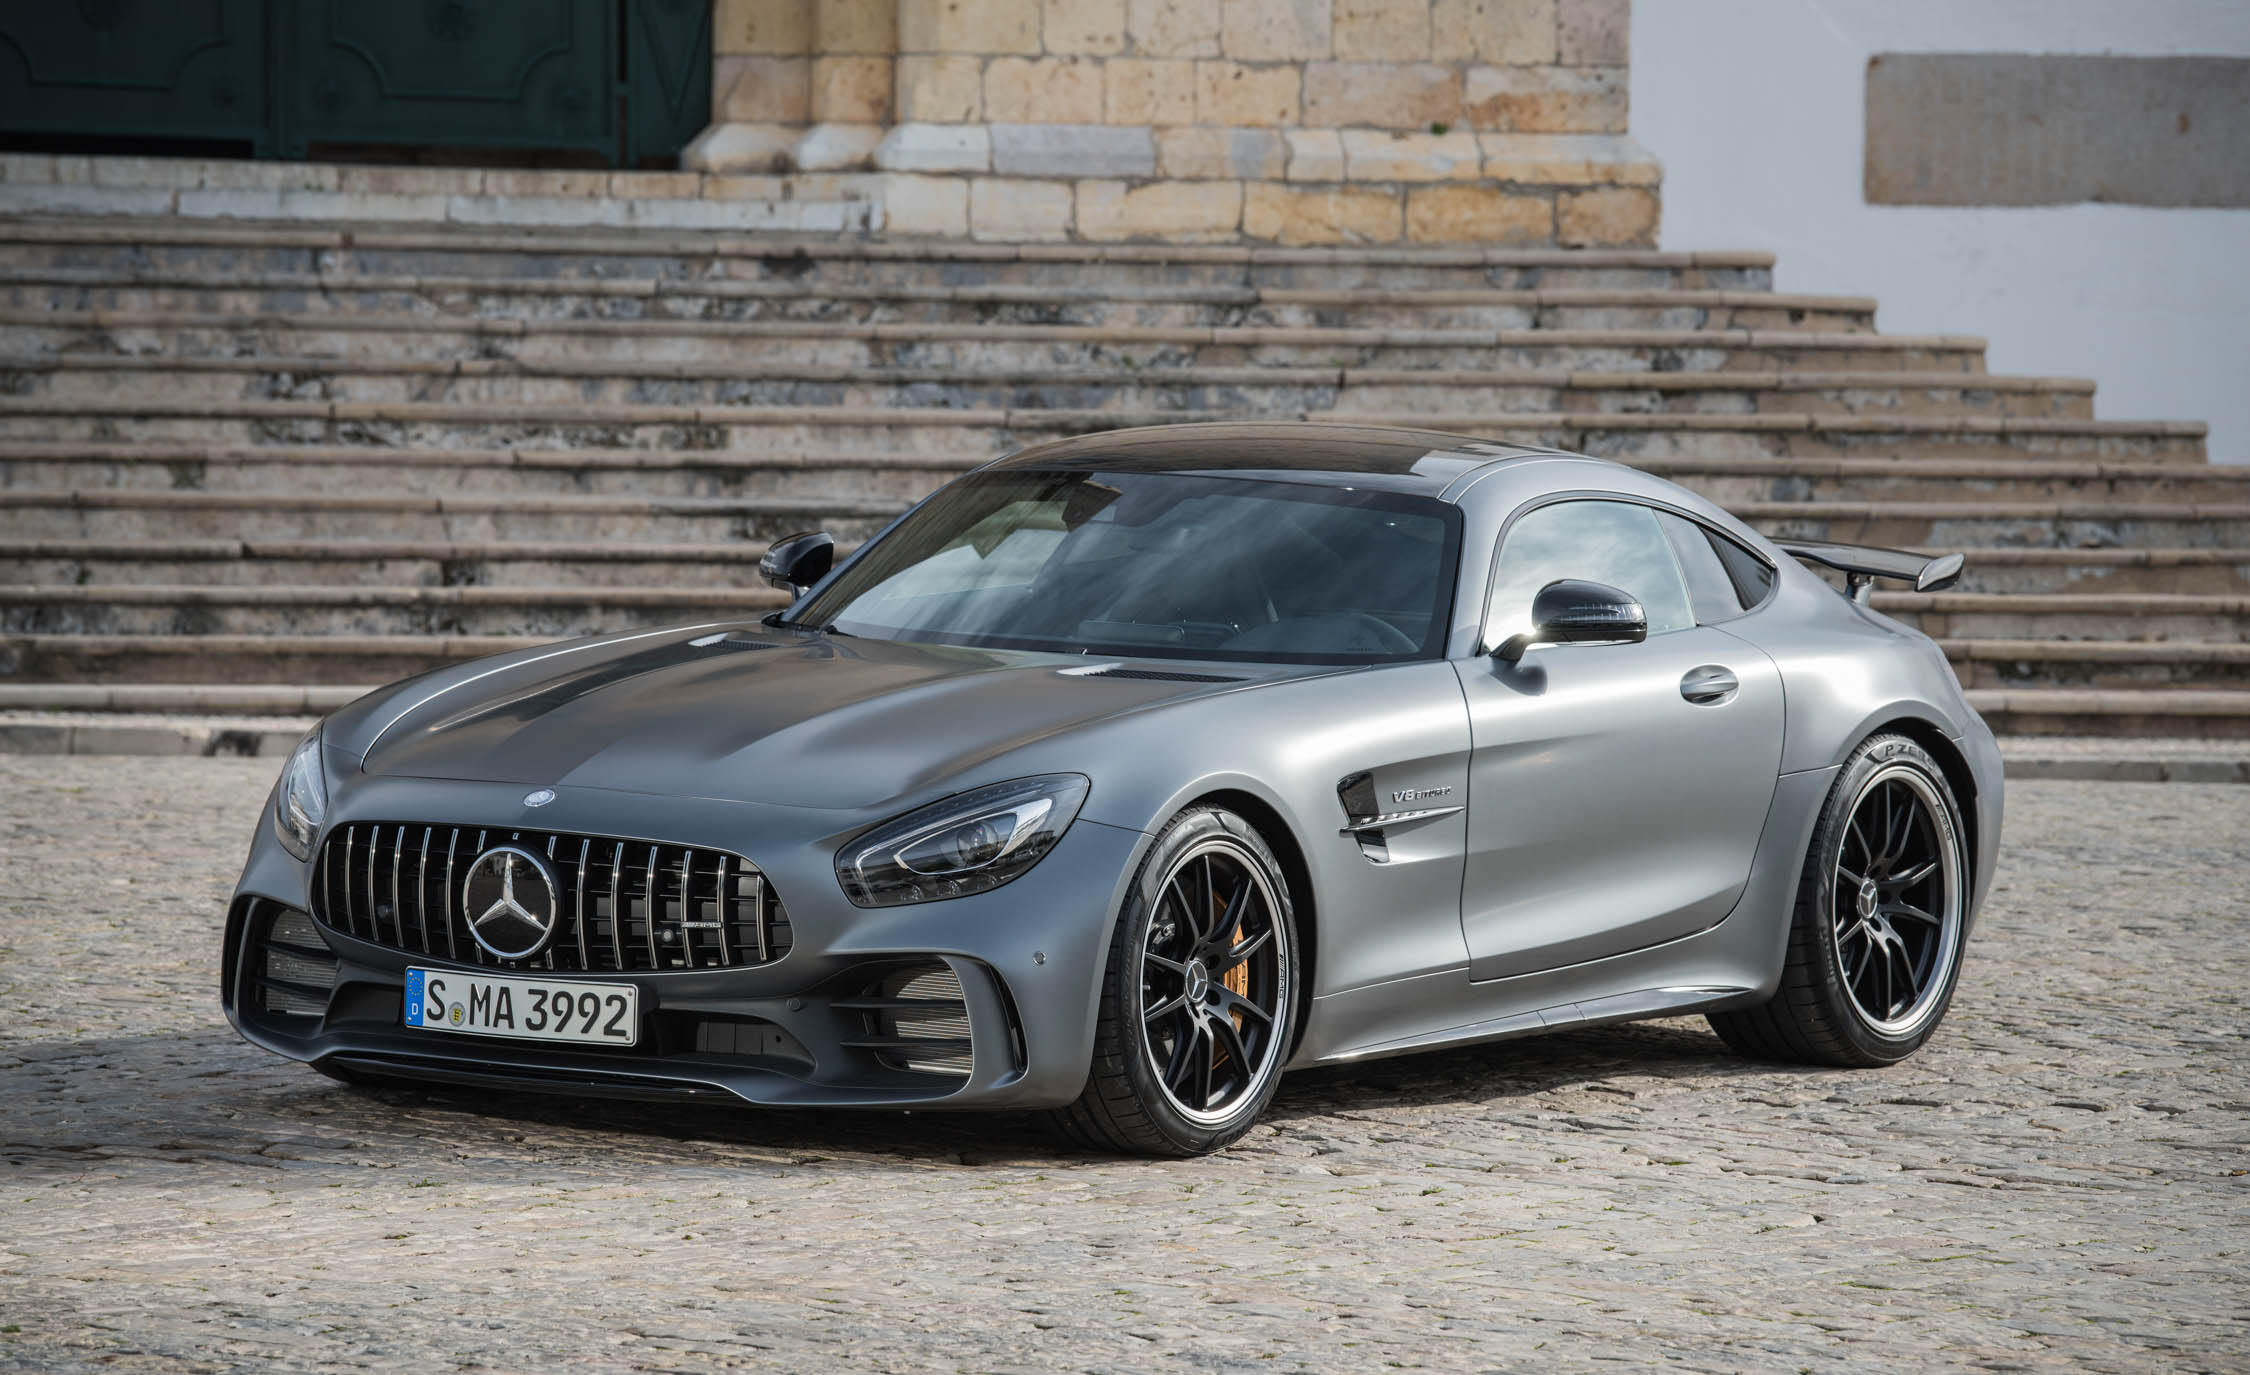 2018 Mercedes AMG GT R Exterior Grey Metallic (Photo 8 of 36)